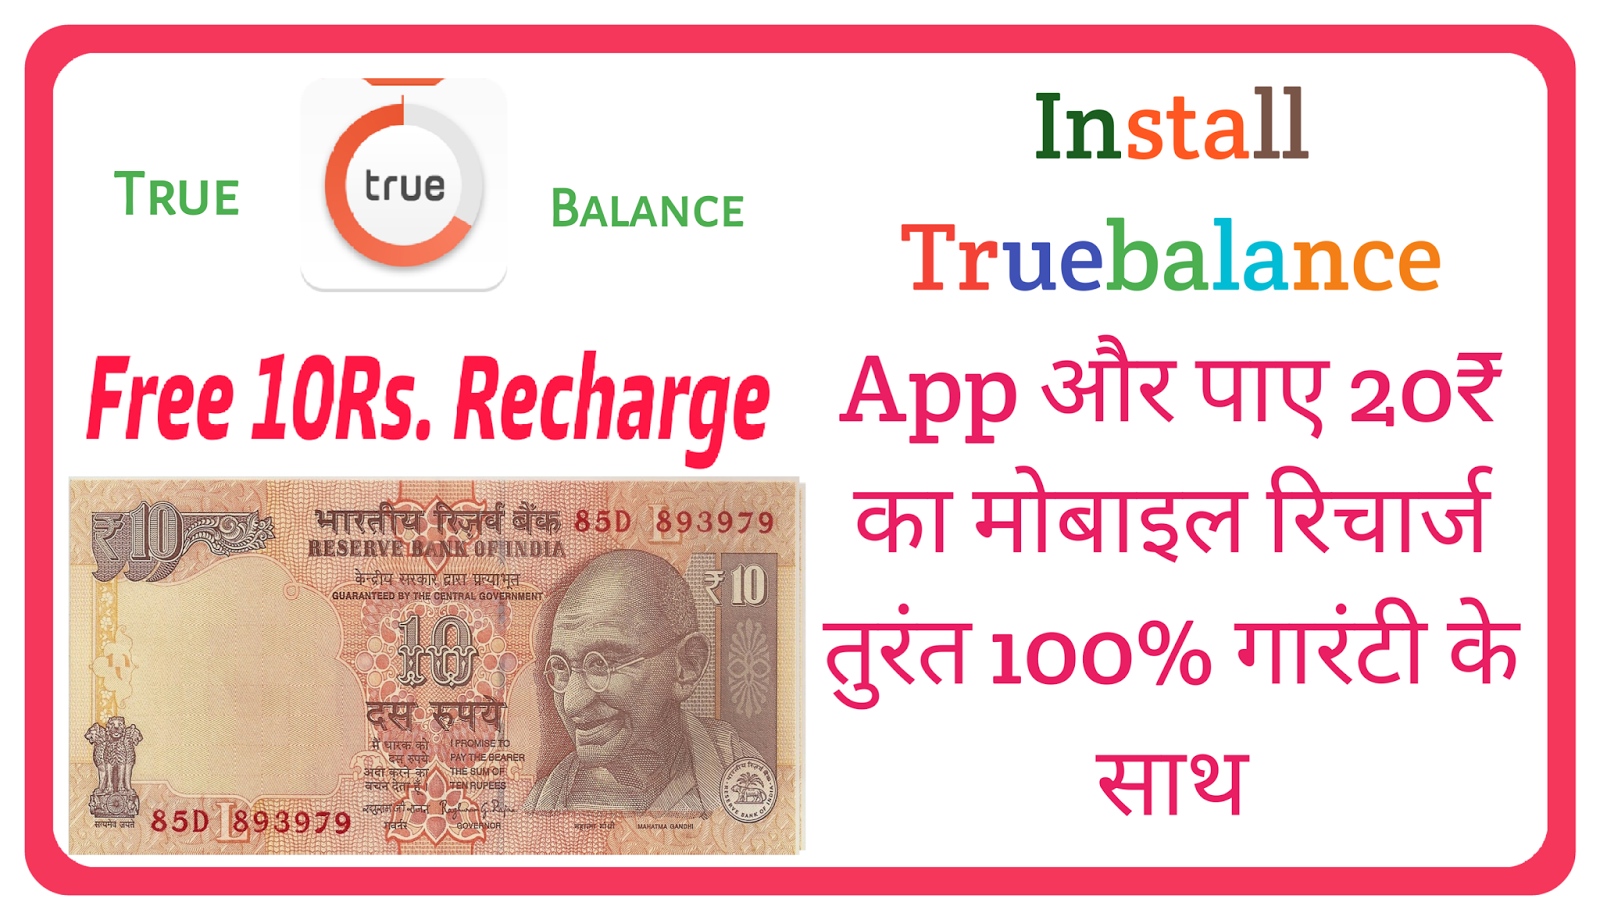 Install Truebalance App And Get 20Rs  Free Recharge Instantly